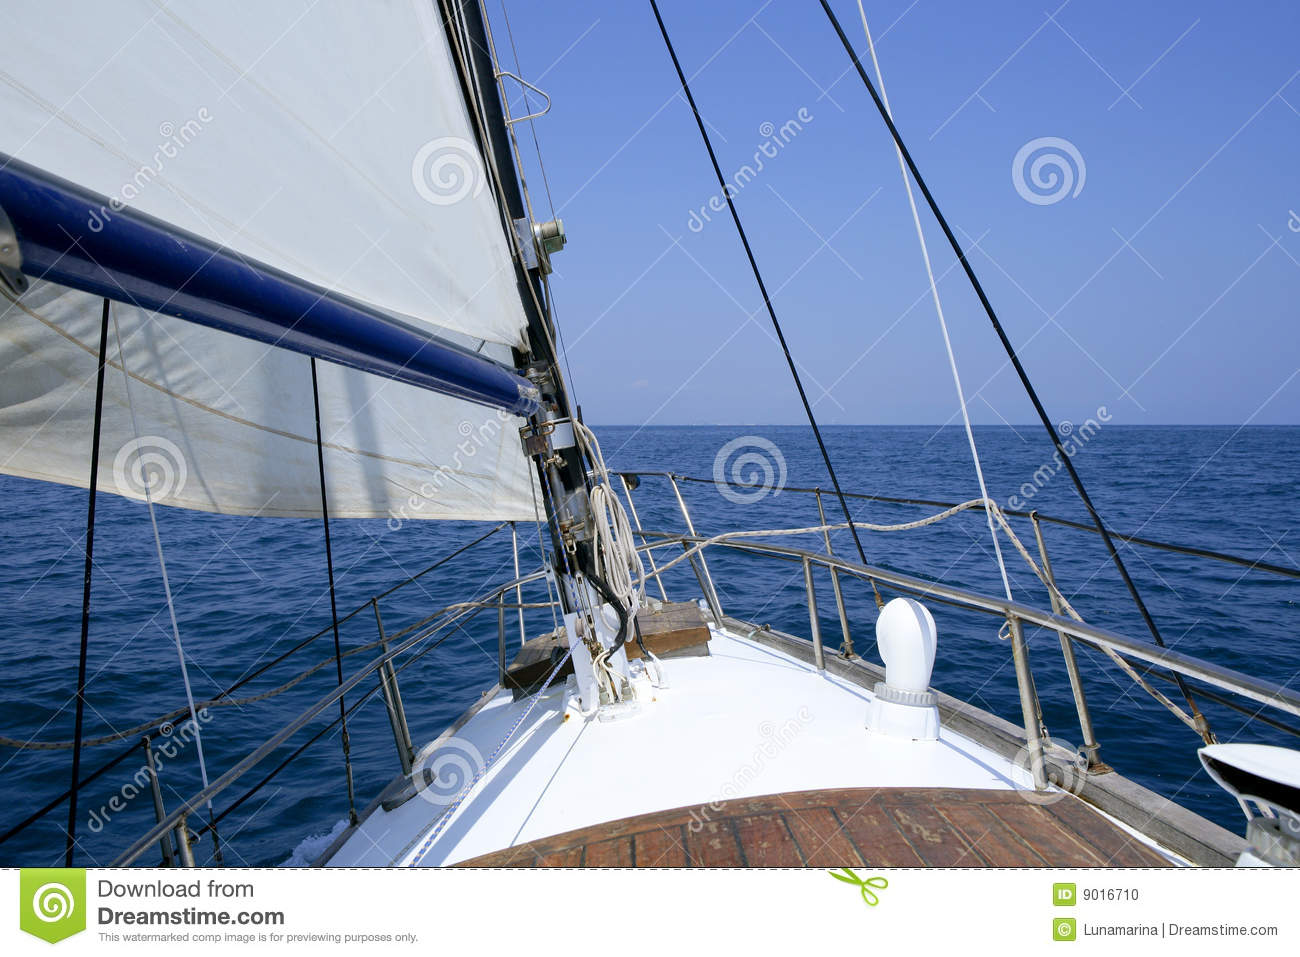 Sailing with an old sailboat over blue mediterranean summer sea.